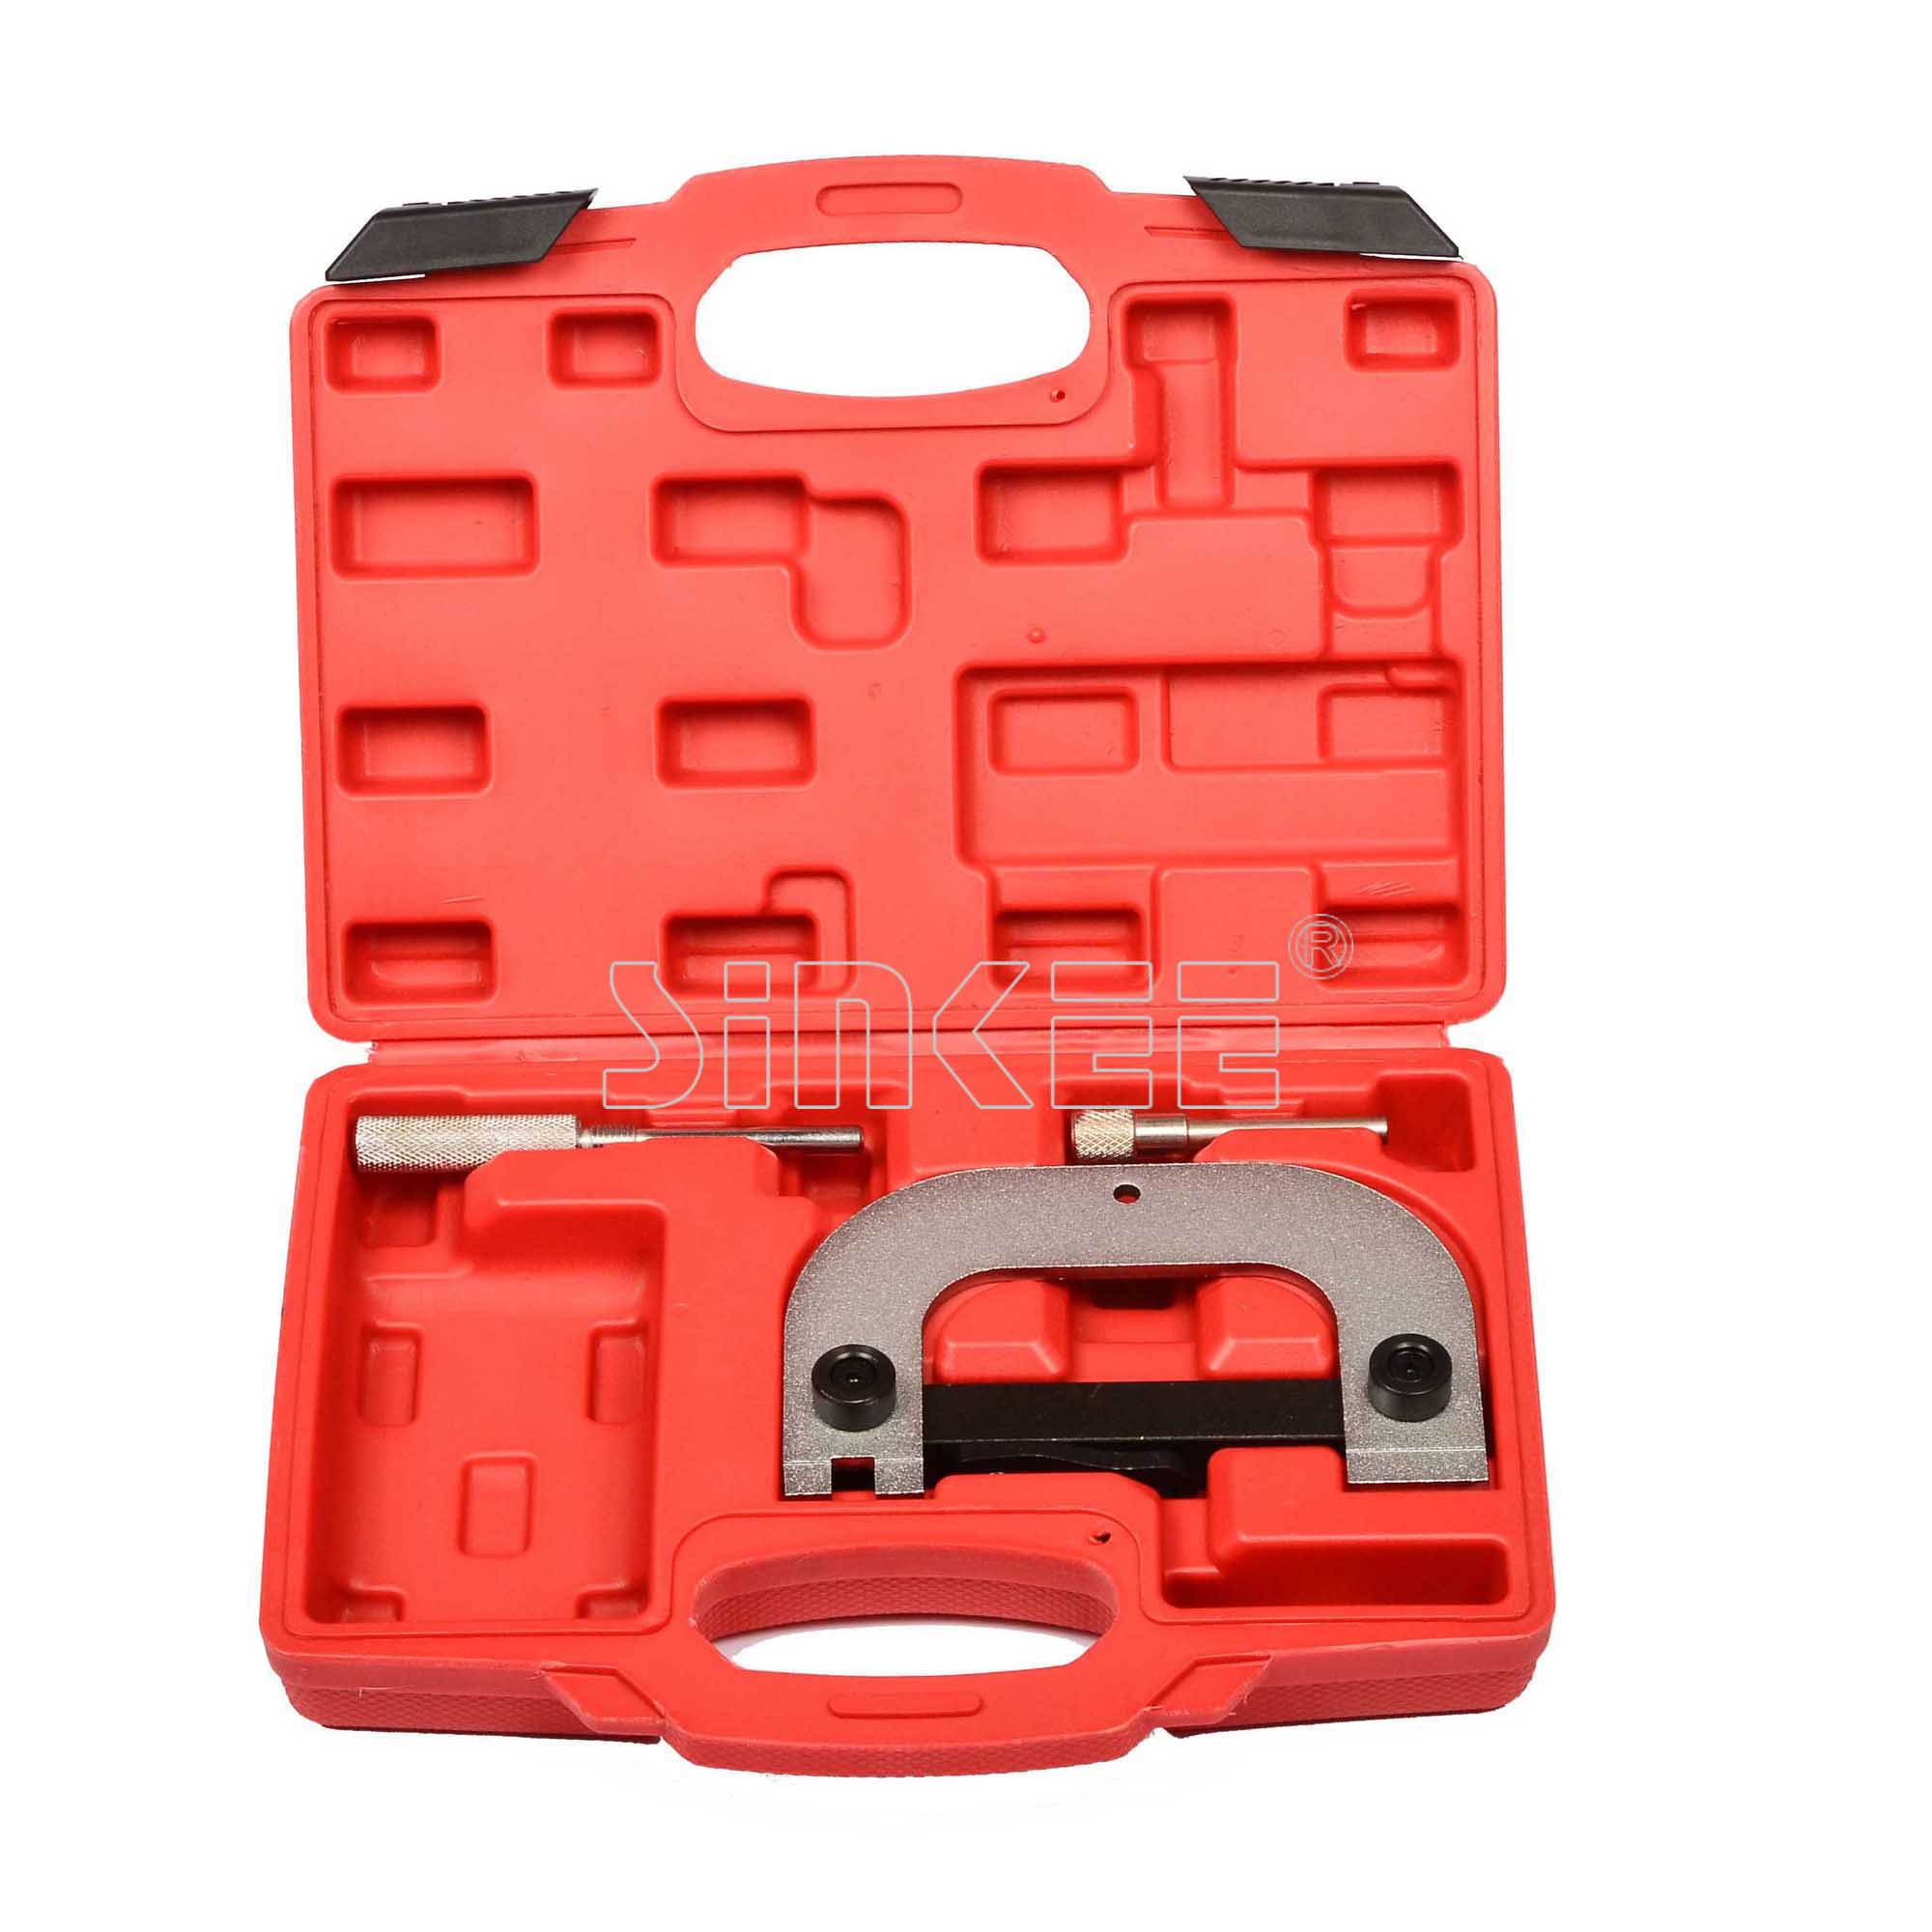 Engine Timing Tool Kit For Renault Vauxhall Petrol Engines 1.4 1.6 1.8 2.0 16v belt Driven PT1068